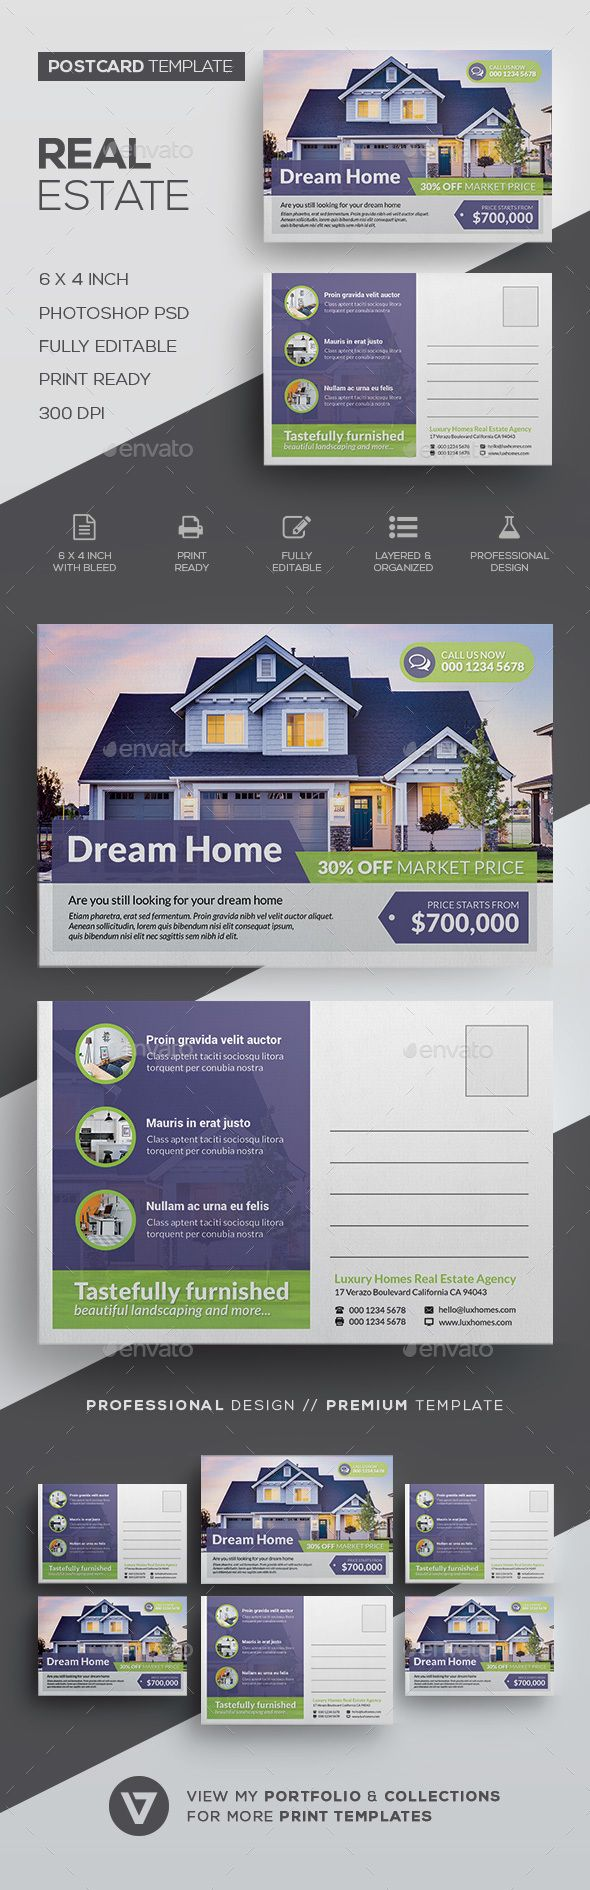 276 best flyer images on Pinterest | Flyer design, Page layout and ...